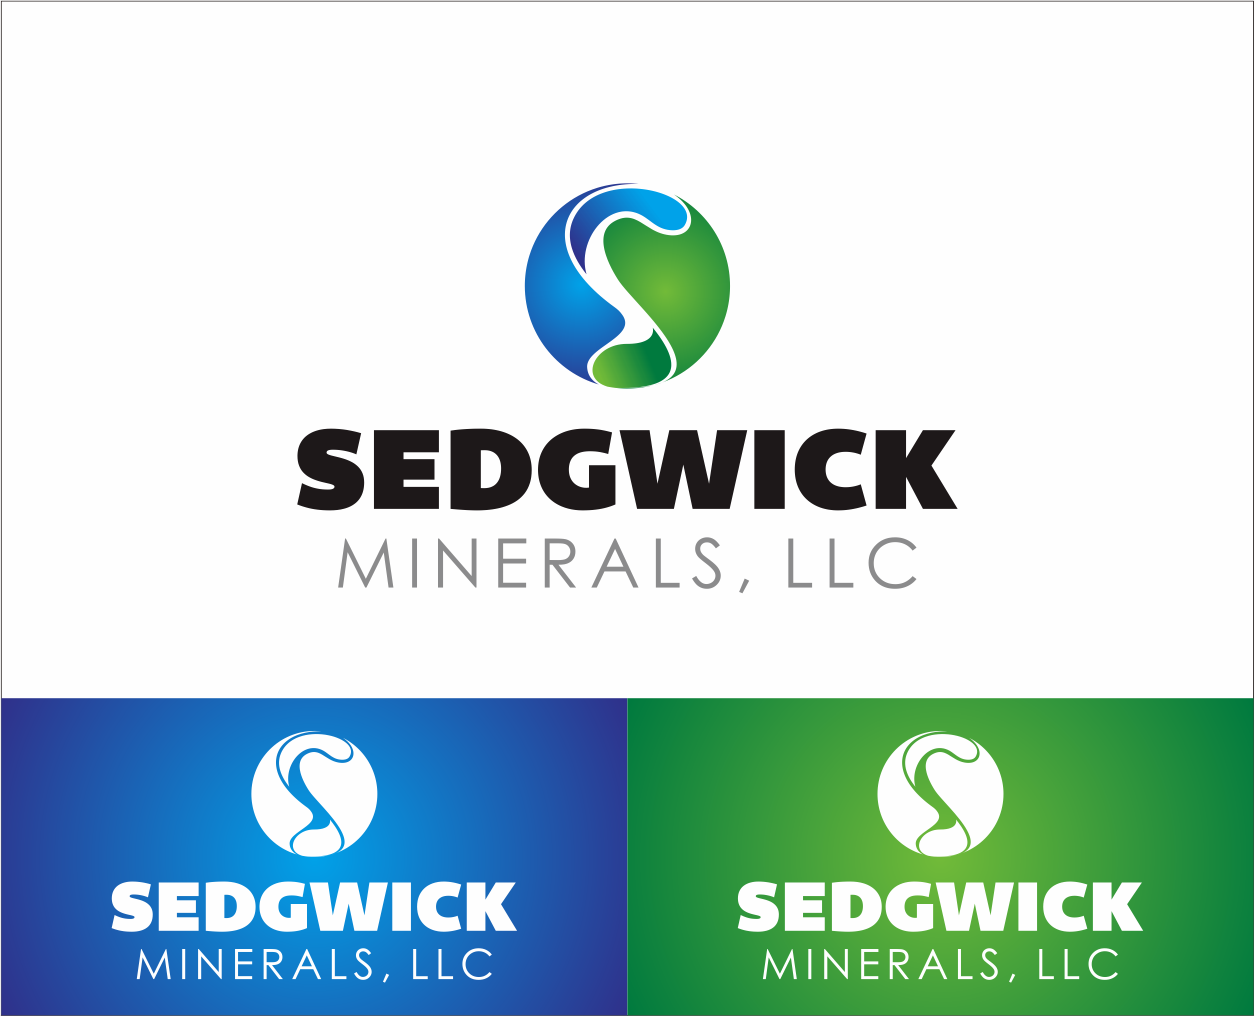 Logo Design by Armada Jamaluddin - Entry No. 63 in the Logo Design Contest Inspiring Logo Design for Sedgwick Minerals, LLC.